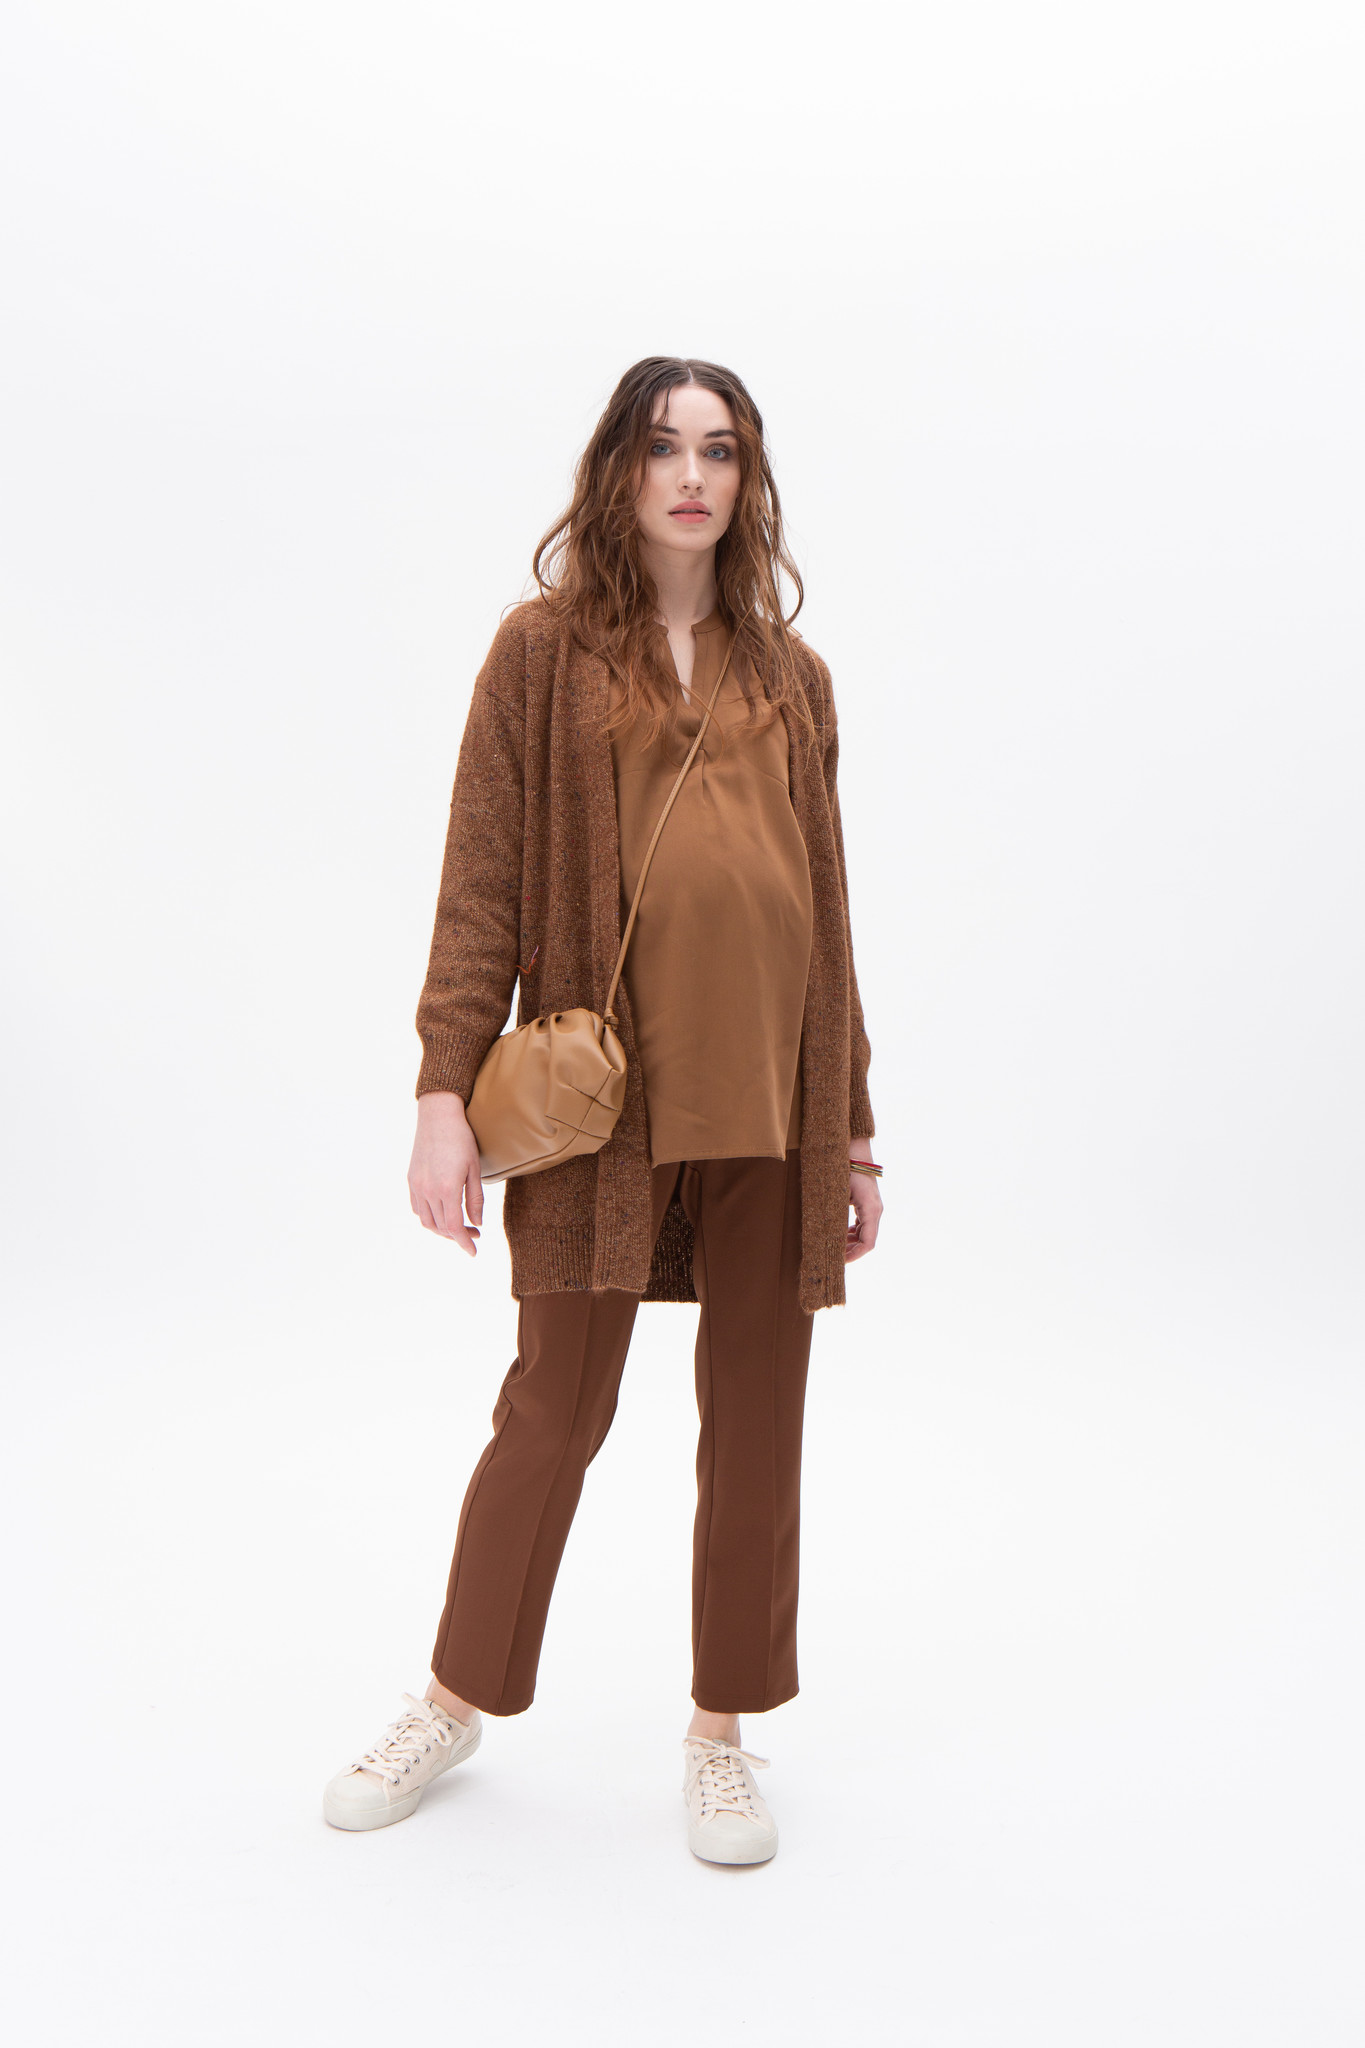 Easy trousers straight fit - brown twill-1